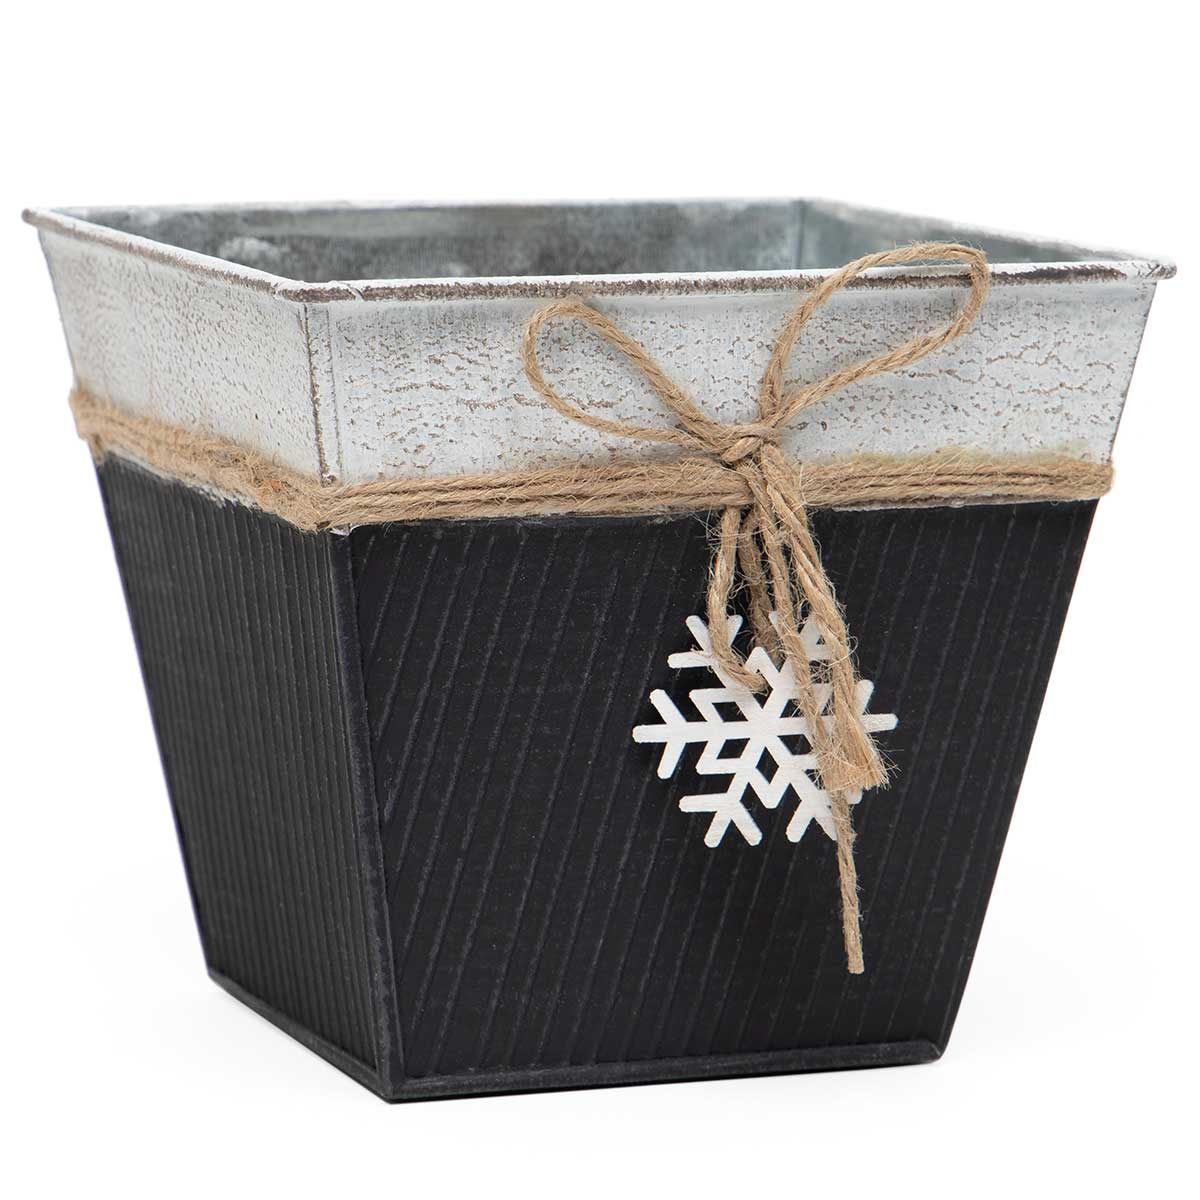 FALALA RIBBED SQUARE METAL BUCKET MATTE BLACK WITH WOOD